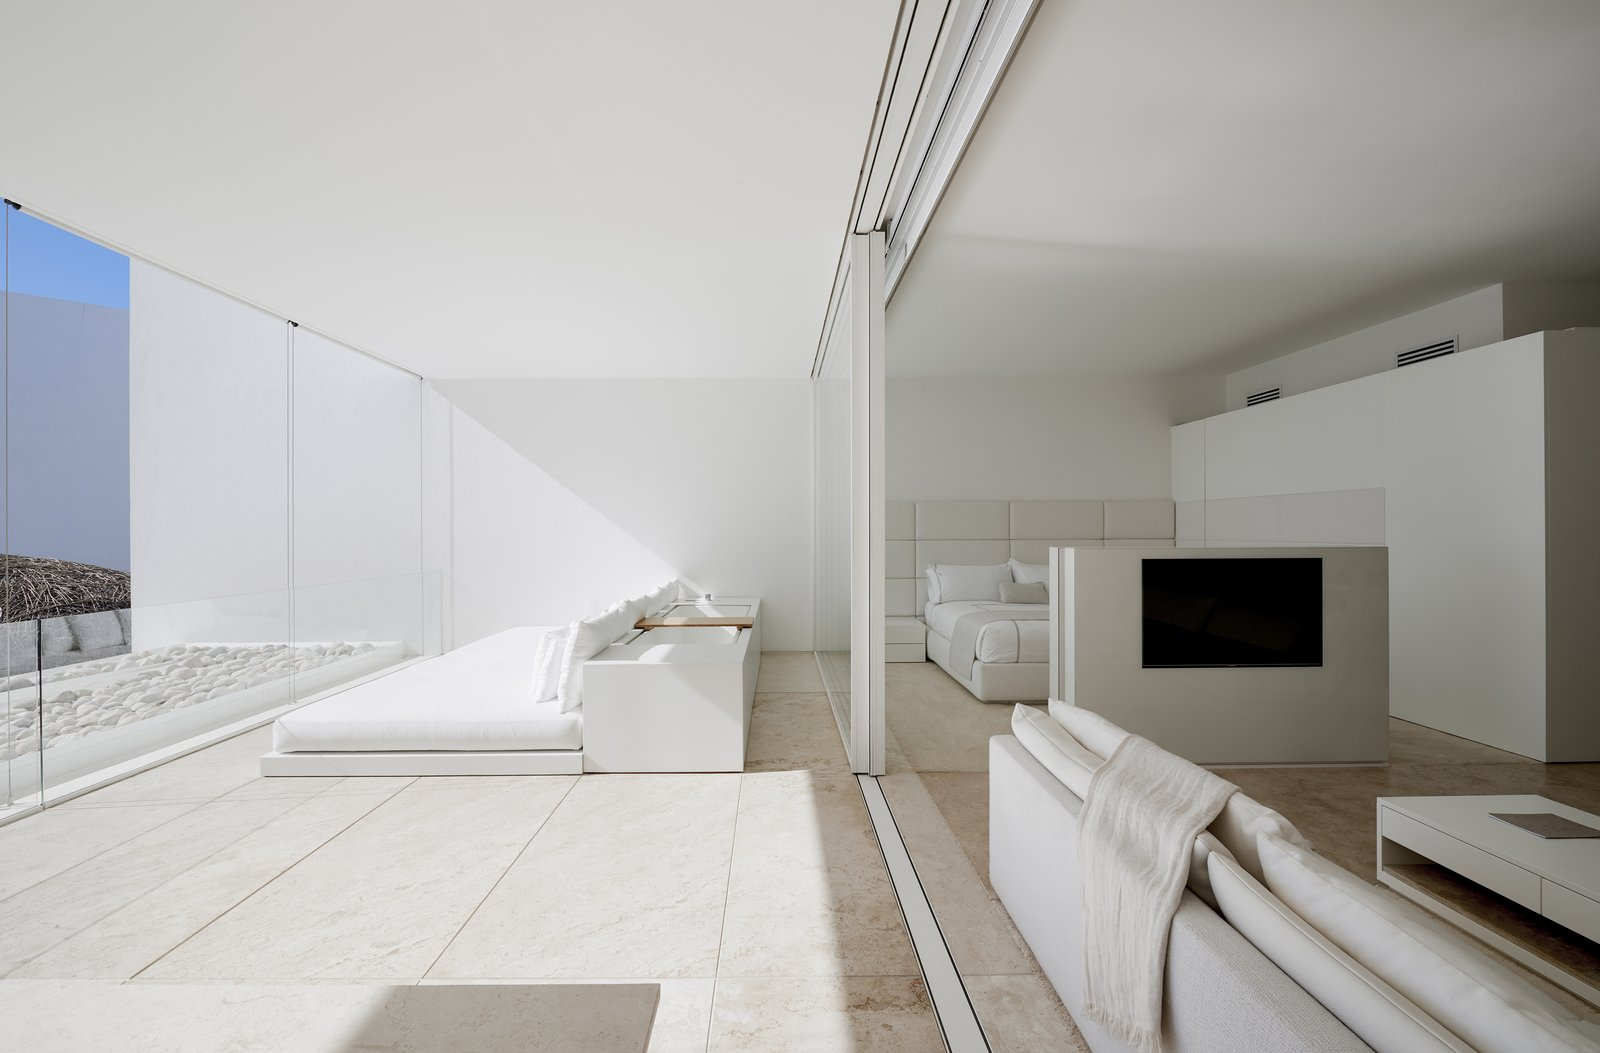 Travertine Floor, Bed, Storage, Living Room, Media Cabinet, Sofa, and Coffee Tables The simplistic, muted interiors balance with the minimal architecture.  Photo 8 of 12 in An Exquisite Beach Resort on Baja California Sur Lies Where the Water Meets the Horizon